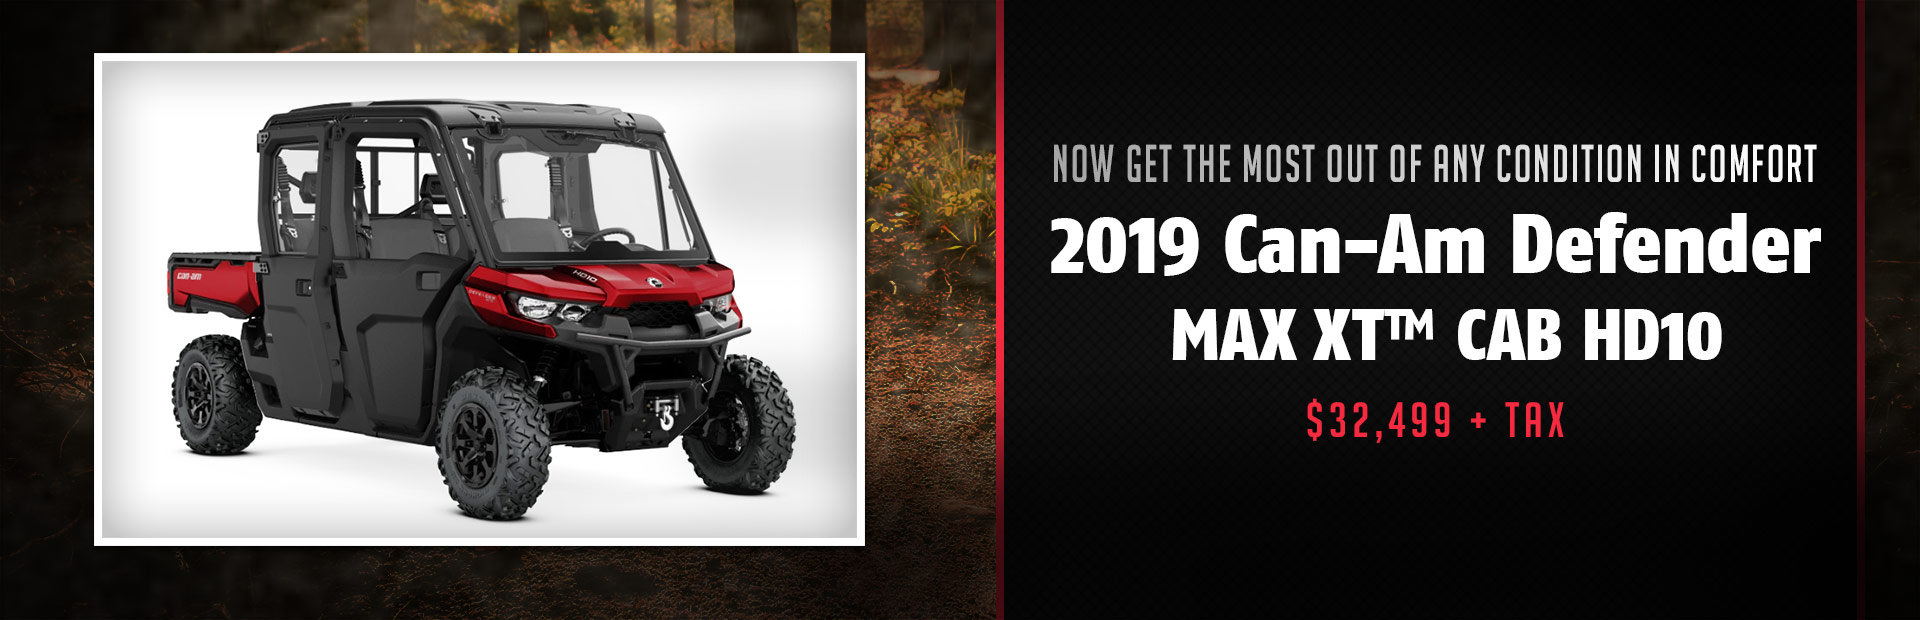 Get the 2019 Can-Am Defender MAX XT™ CAB HD10 for $32,499 + tax!